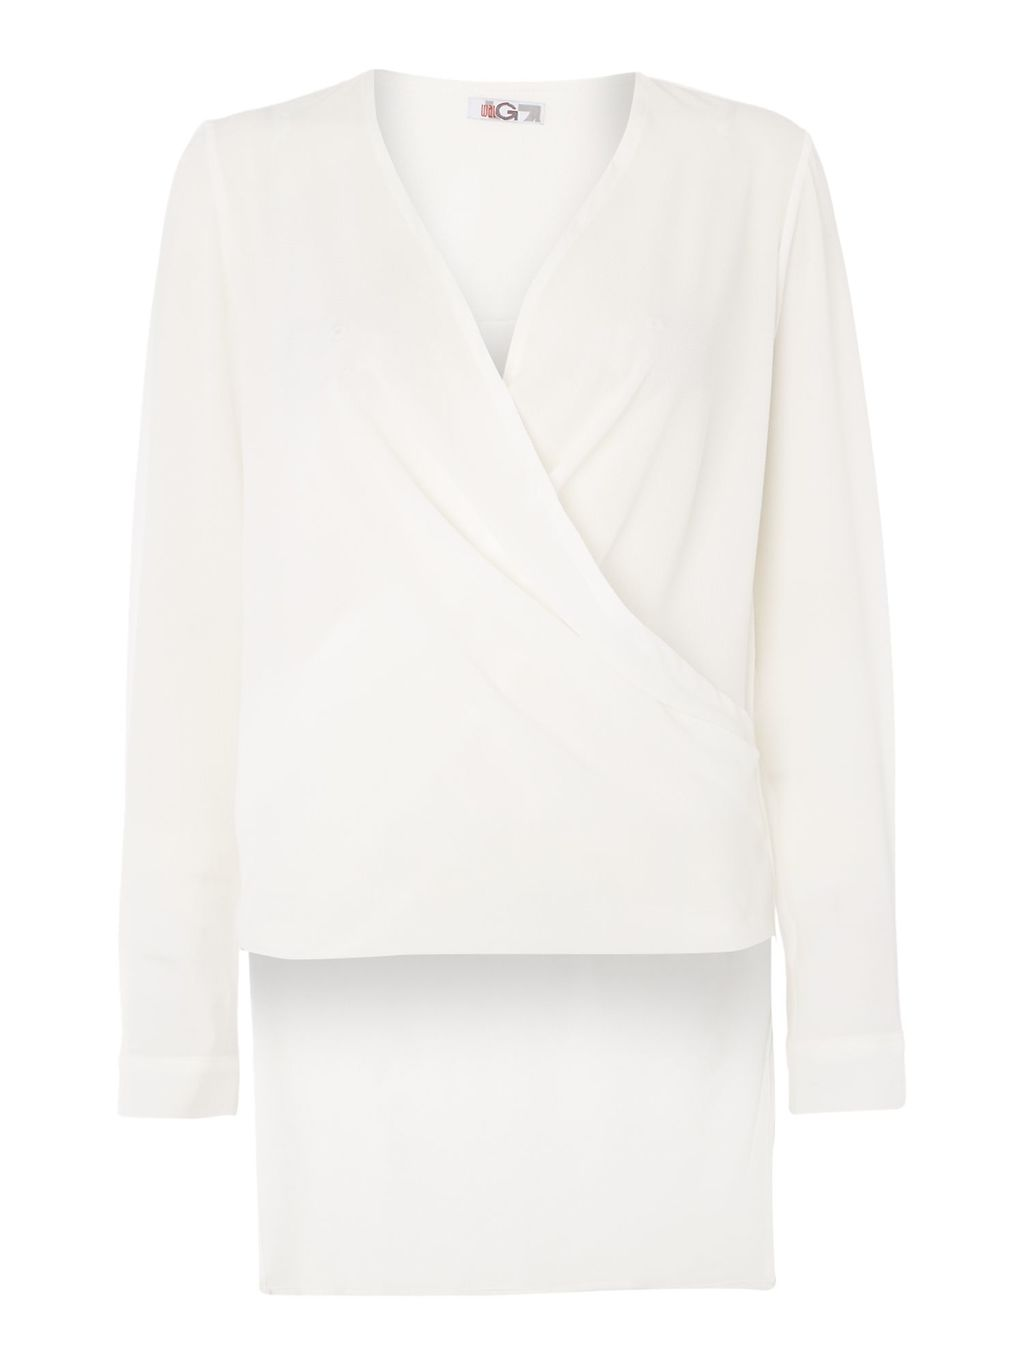 Long Sleeved V Neck Wrap Top, White - neckline: v-neck; pattern: plain; style: wrap/faux wrap; predominant colour: white; occasions: casual; length: standard; fibres: polyester/polyamide - stretch; fit: body skimming; sleeve length: long sleeve; sleeve style: standard; pattern type: fabric; texture group: jersey - stretchy/drapey; season: a/w 2015